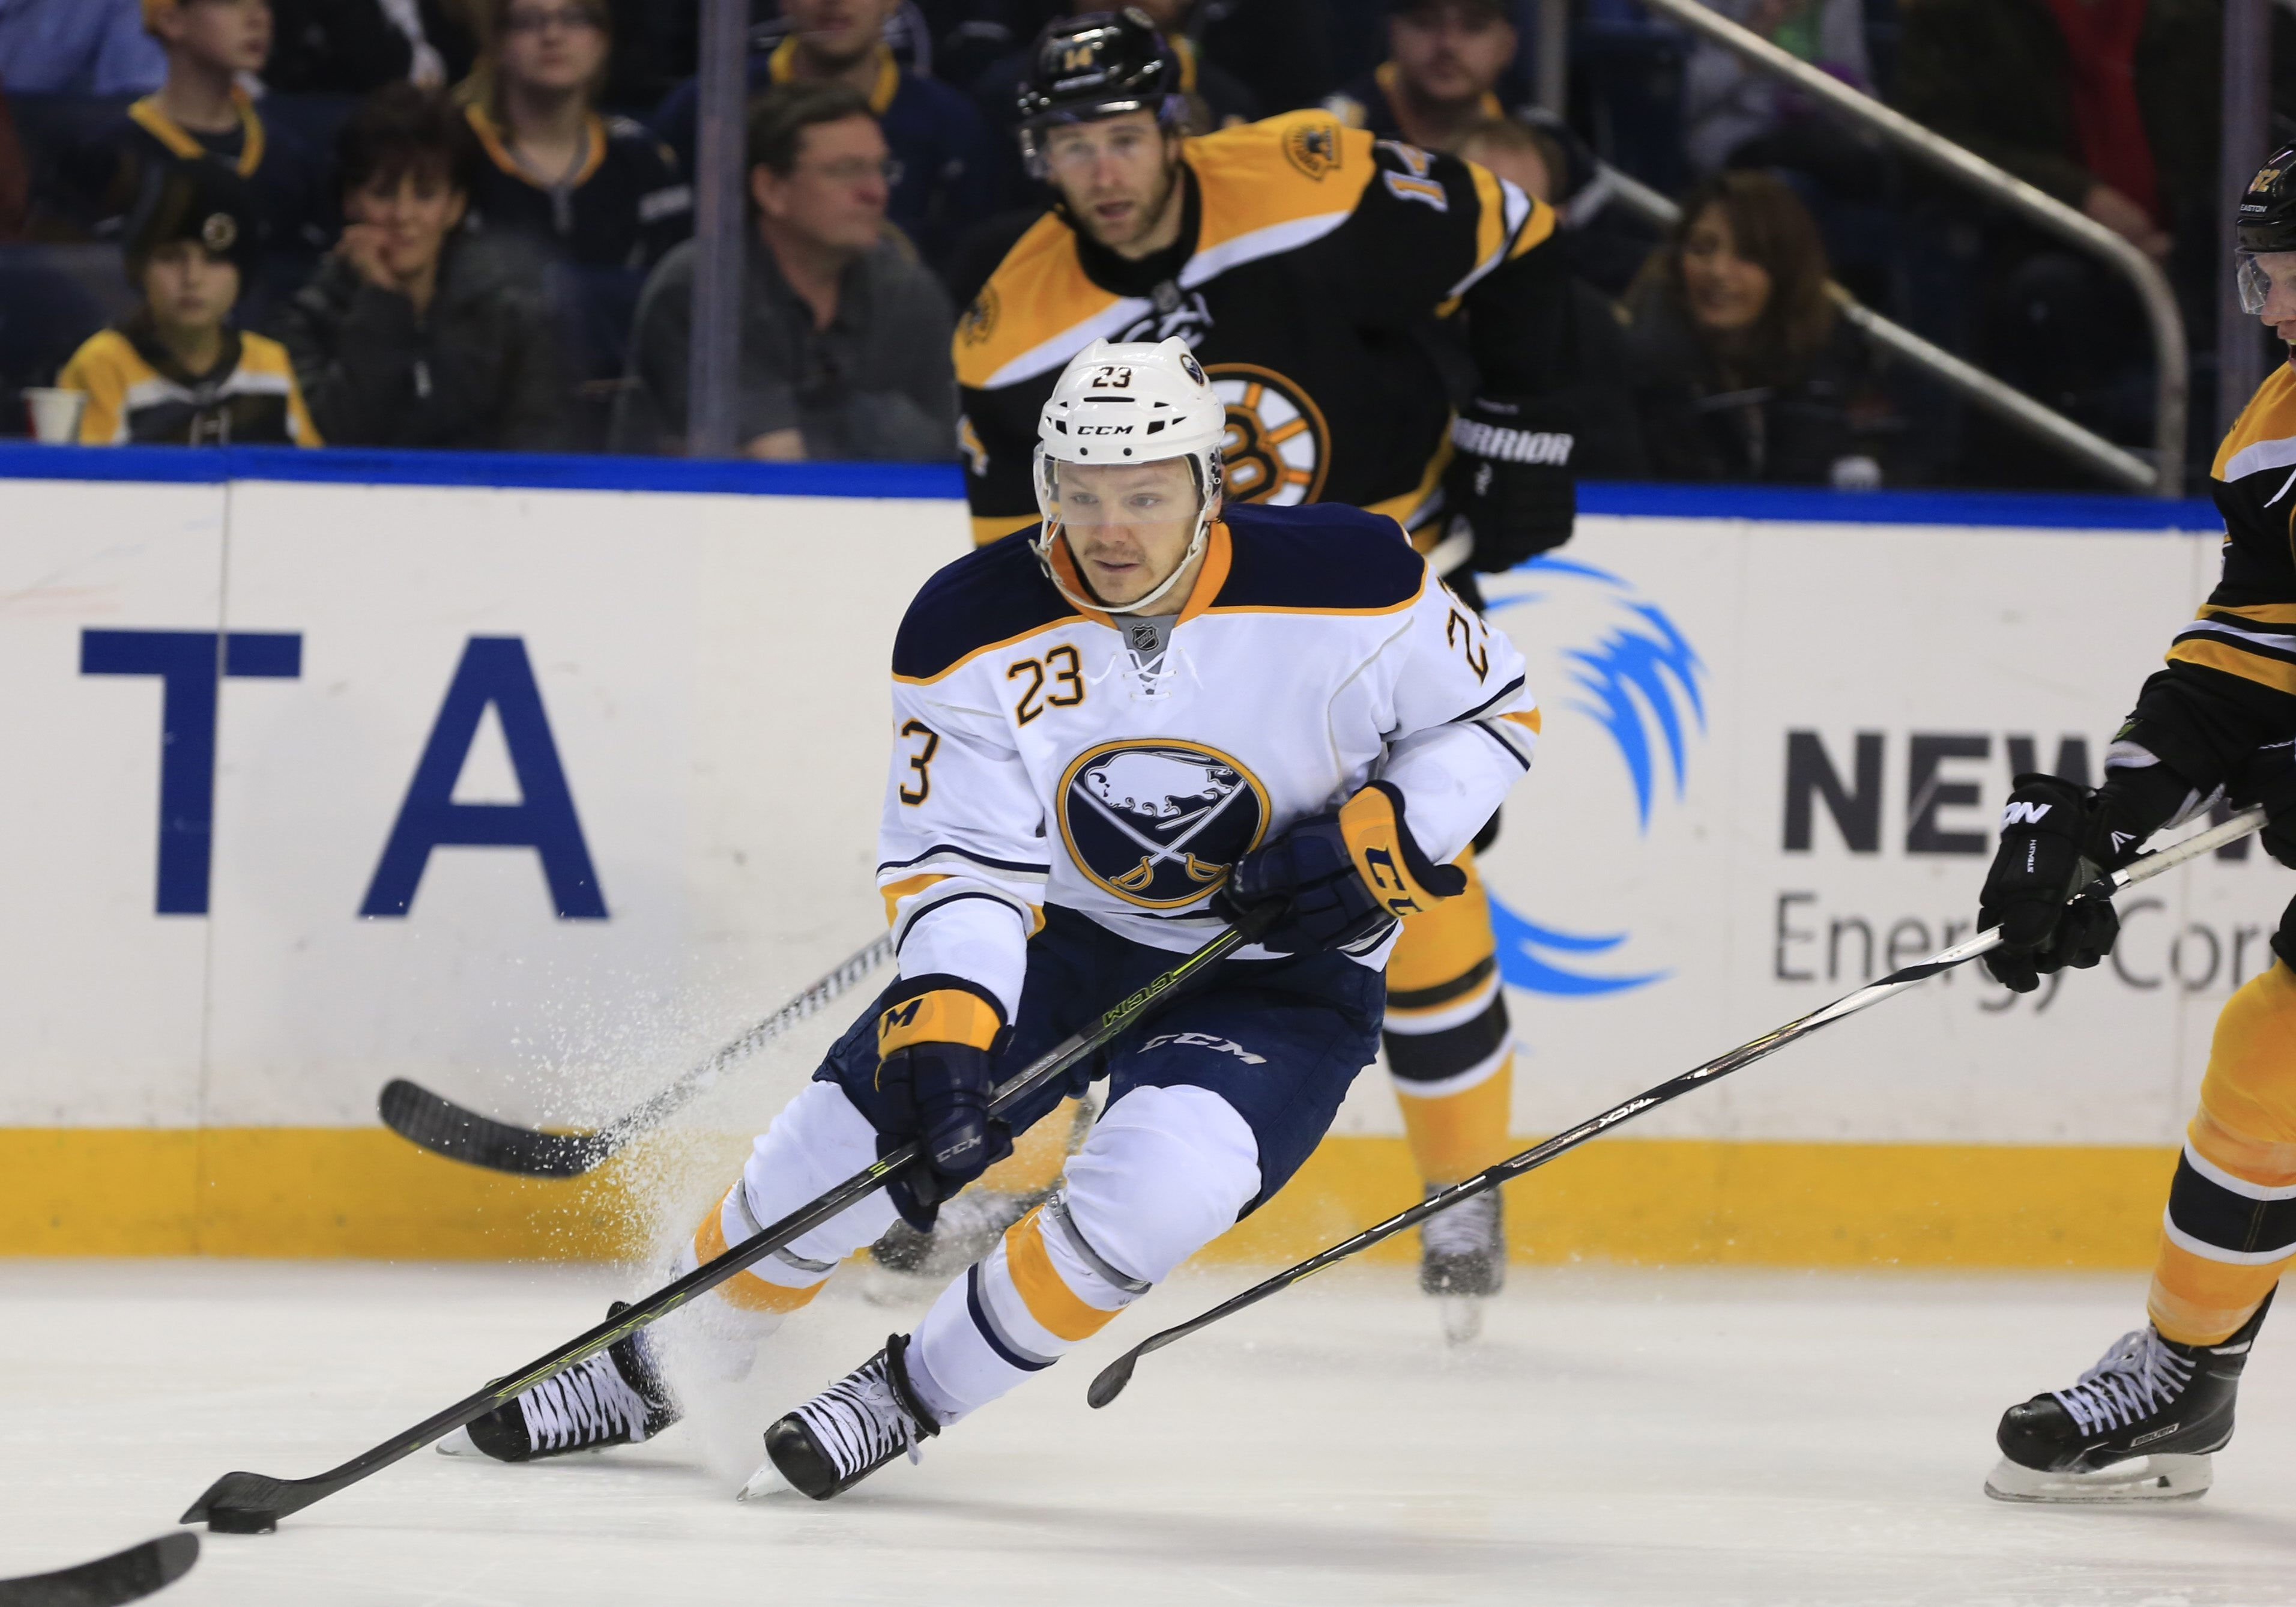 Sam Reinhart's goal Saturday night in Boston was his 14th of the season, four shy of the NHL rookie lead shared by Detroit's Dylan Larkin and Chicago's Artemi Panarin.  (Harry Scull Jr./Buffalo News file photo)